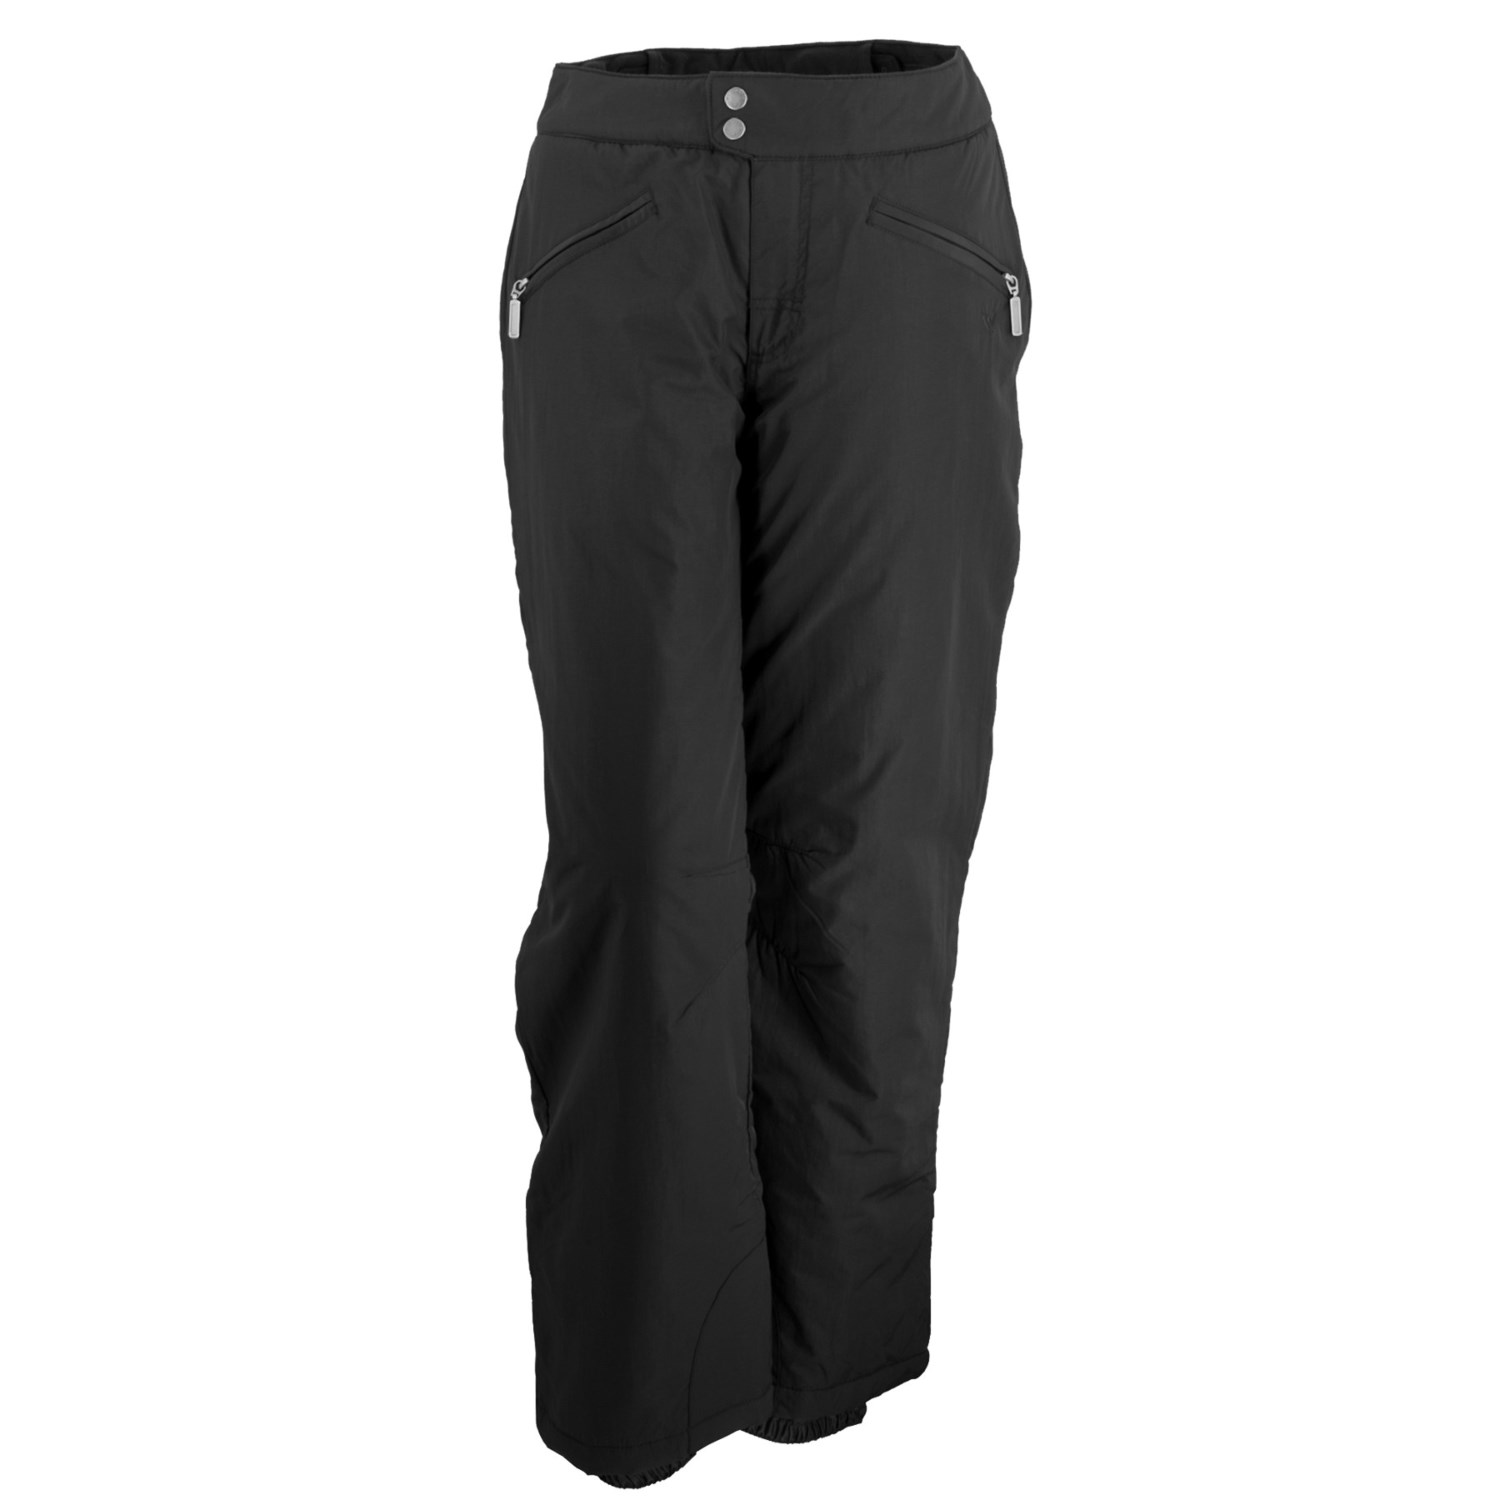 Choose plus size ski pants from Athleta that are figure-flattering and stylish must-haves. This winter she will look great in comfortable and fashionable designs that really make a statement with Athleta plus size ski pants.